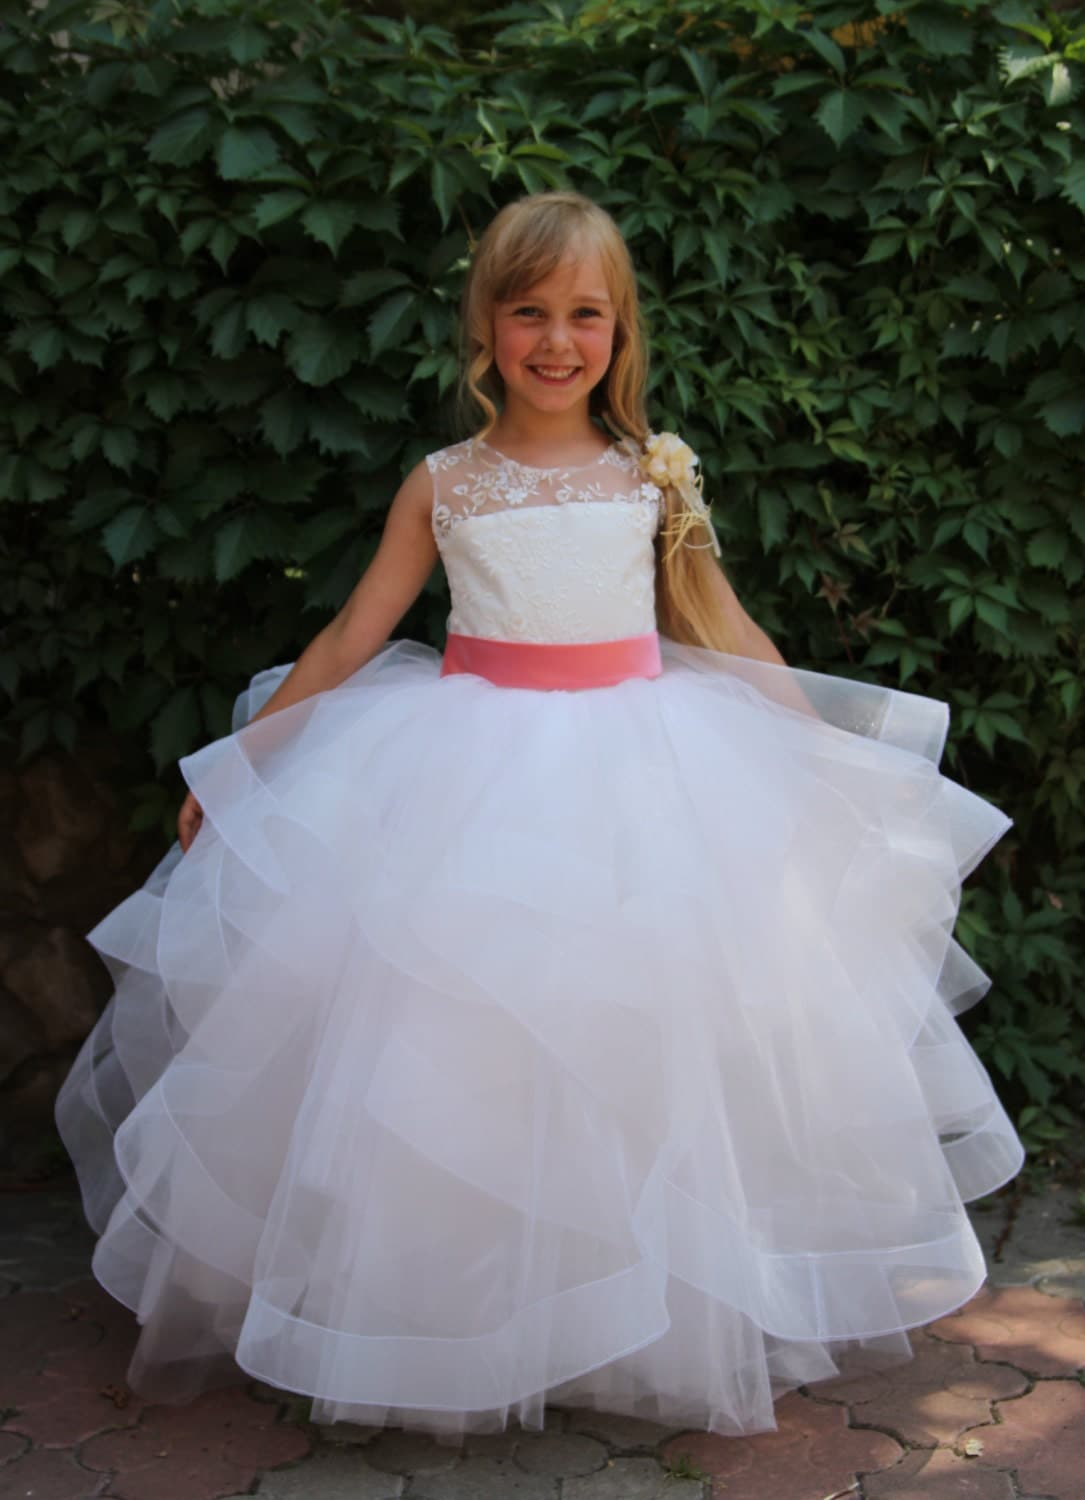 ivory flower girl dress wedding party holiday bridesmaid